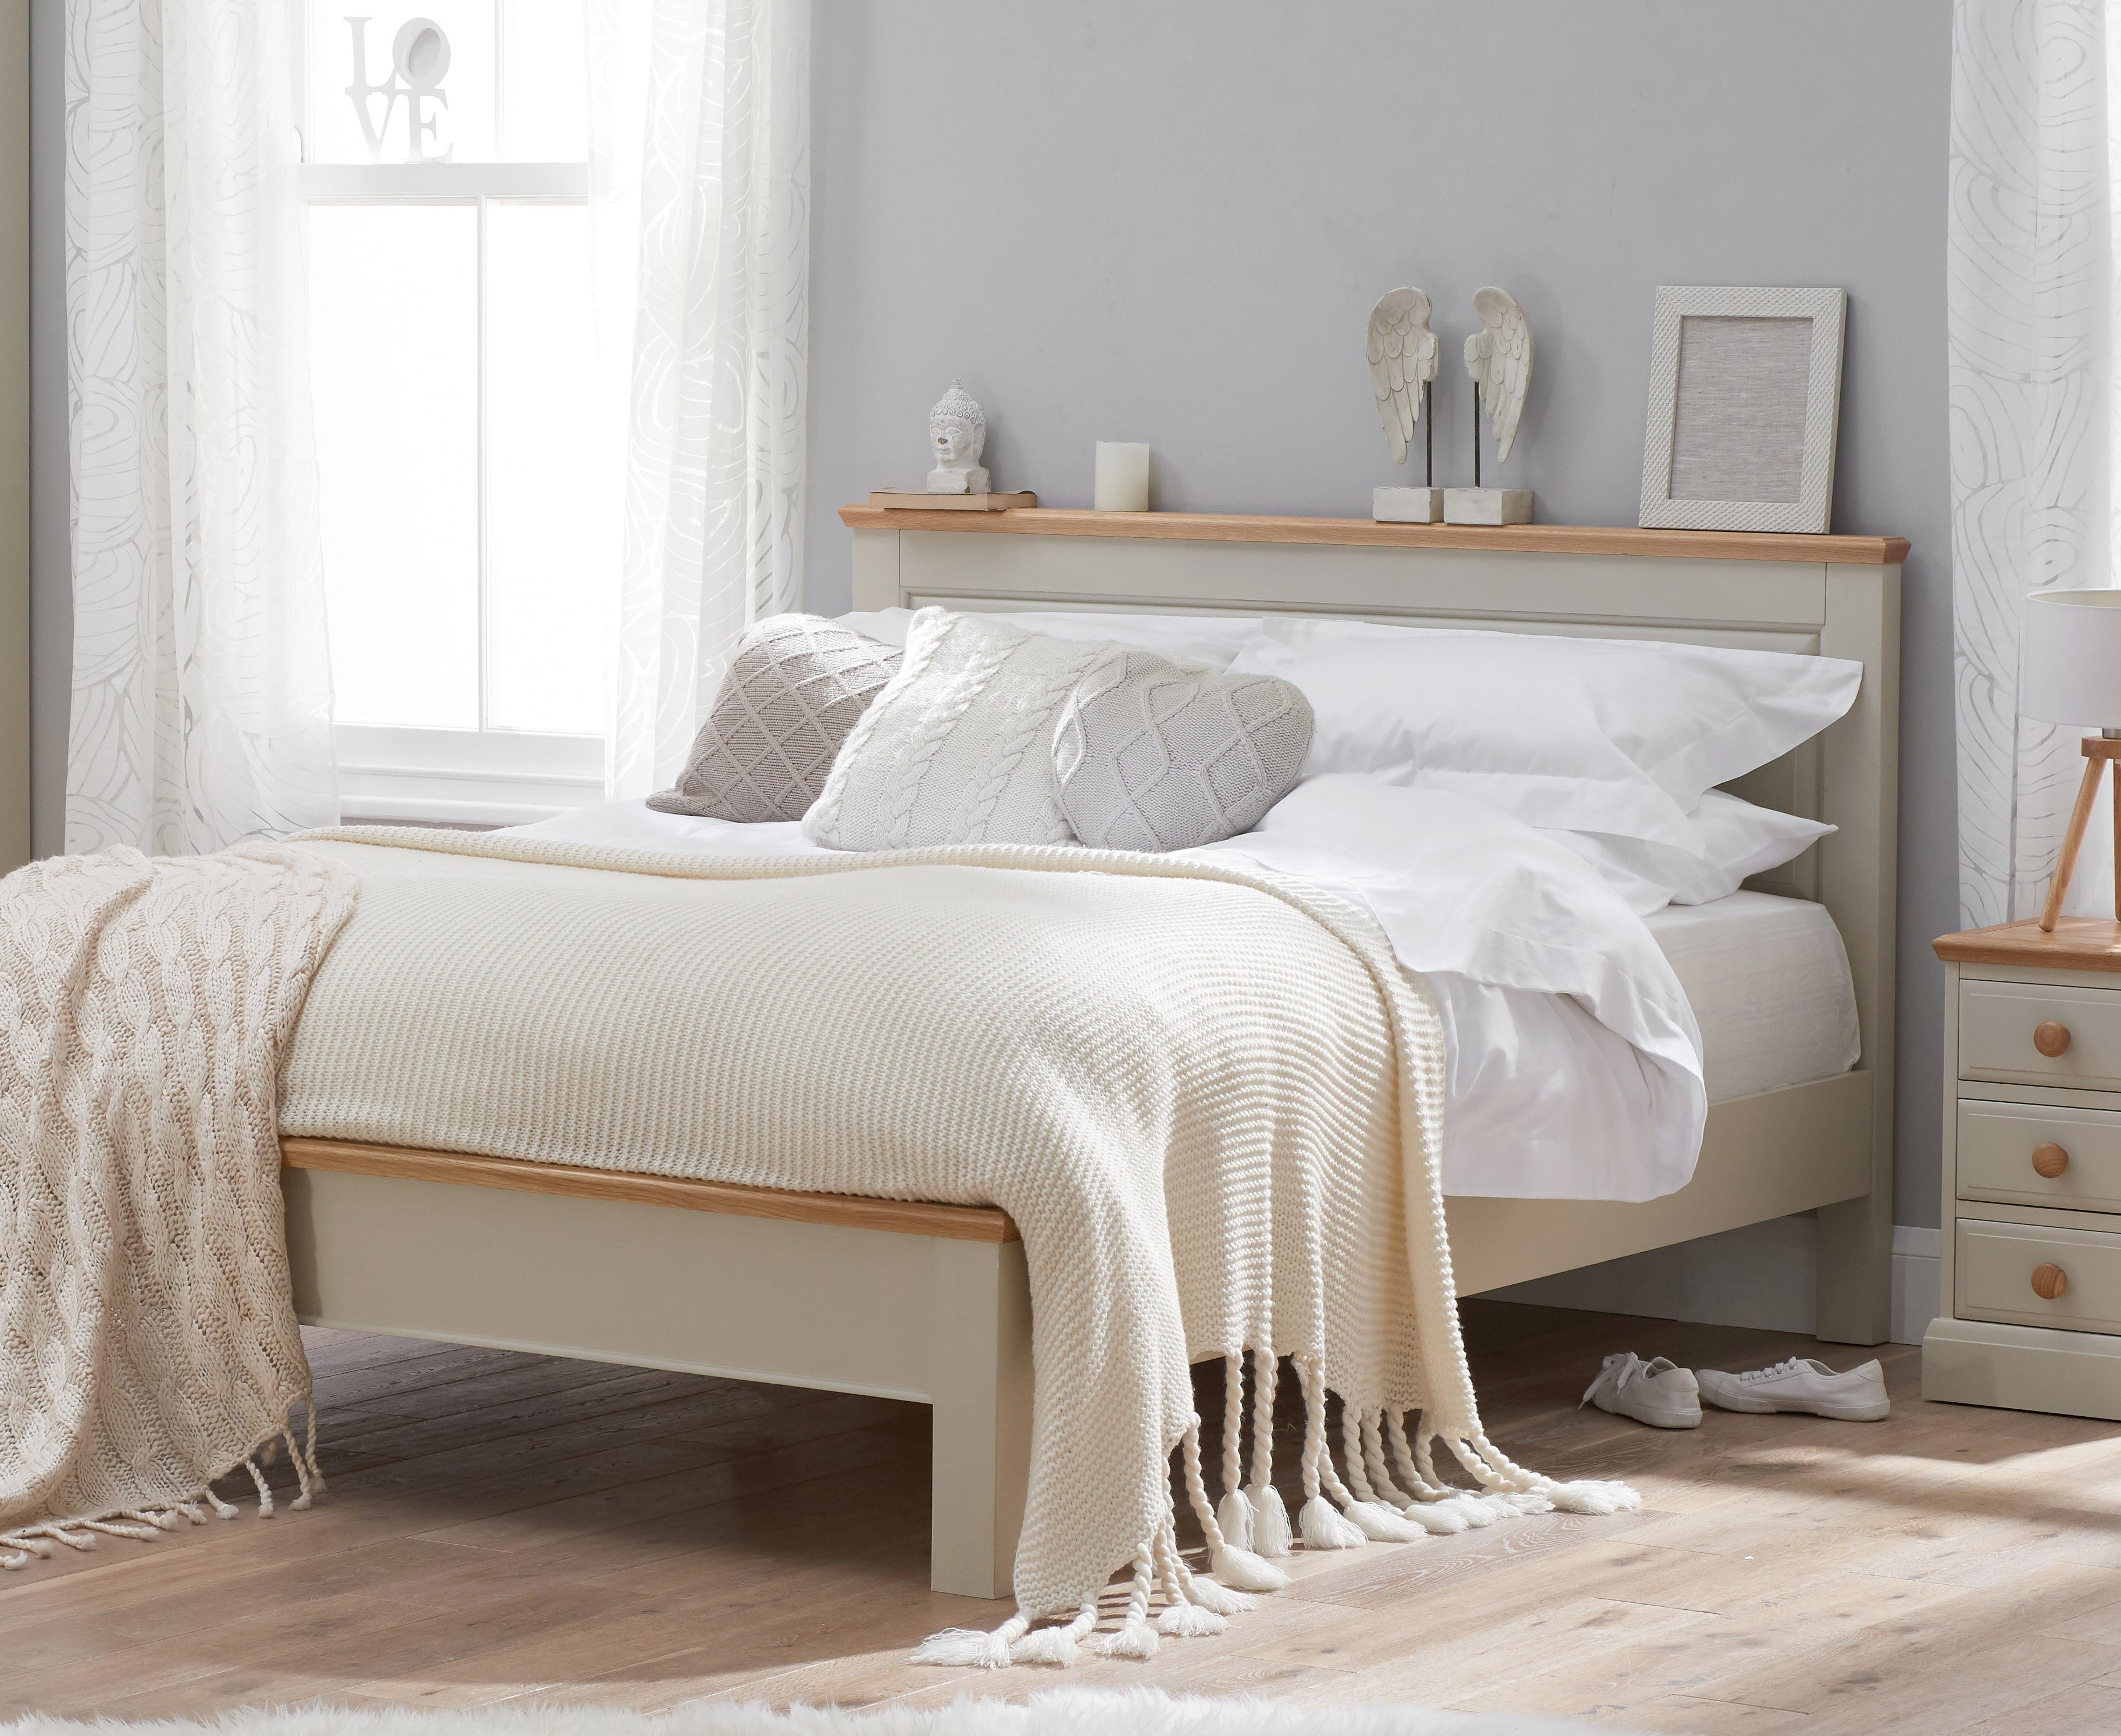 Image of Addison Oak and Stone Painted King Size Bed